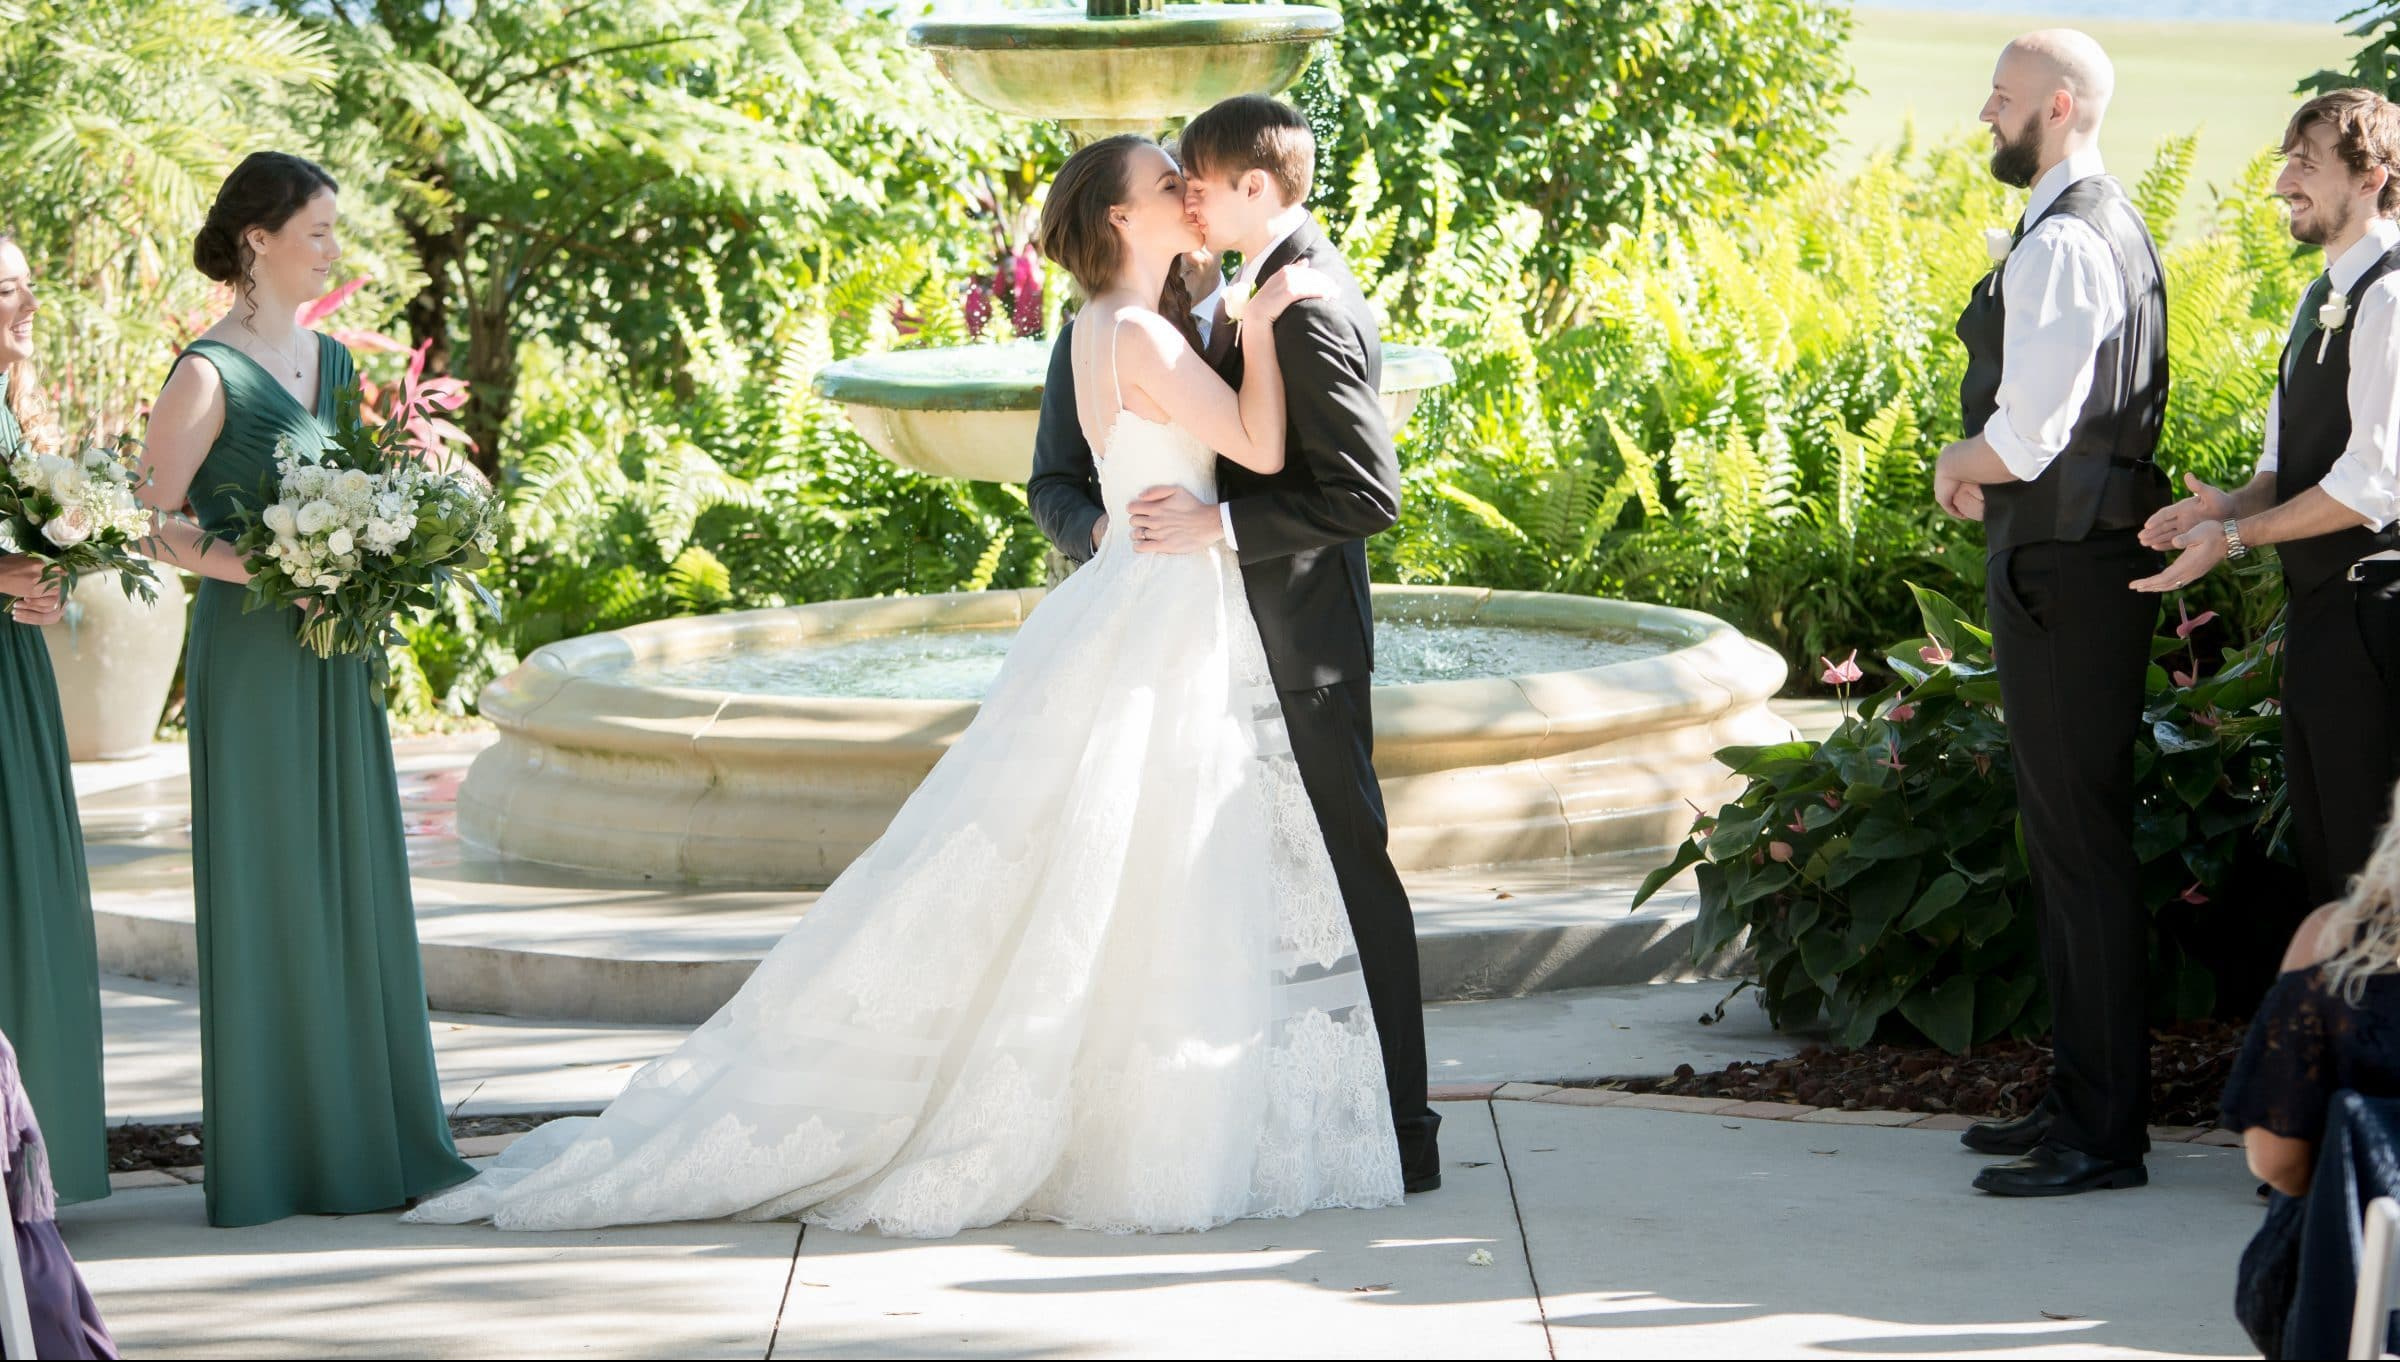 Bride and groom share first kiss in Legends Courtyard